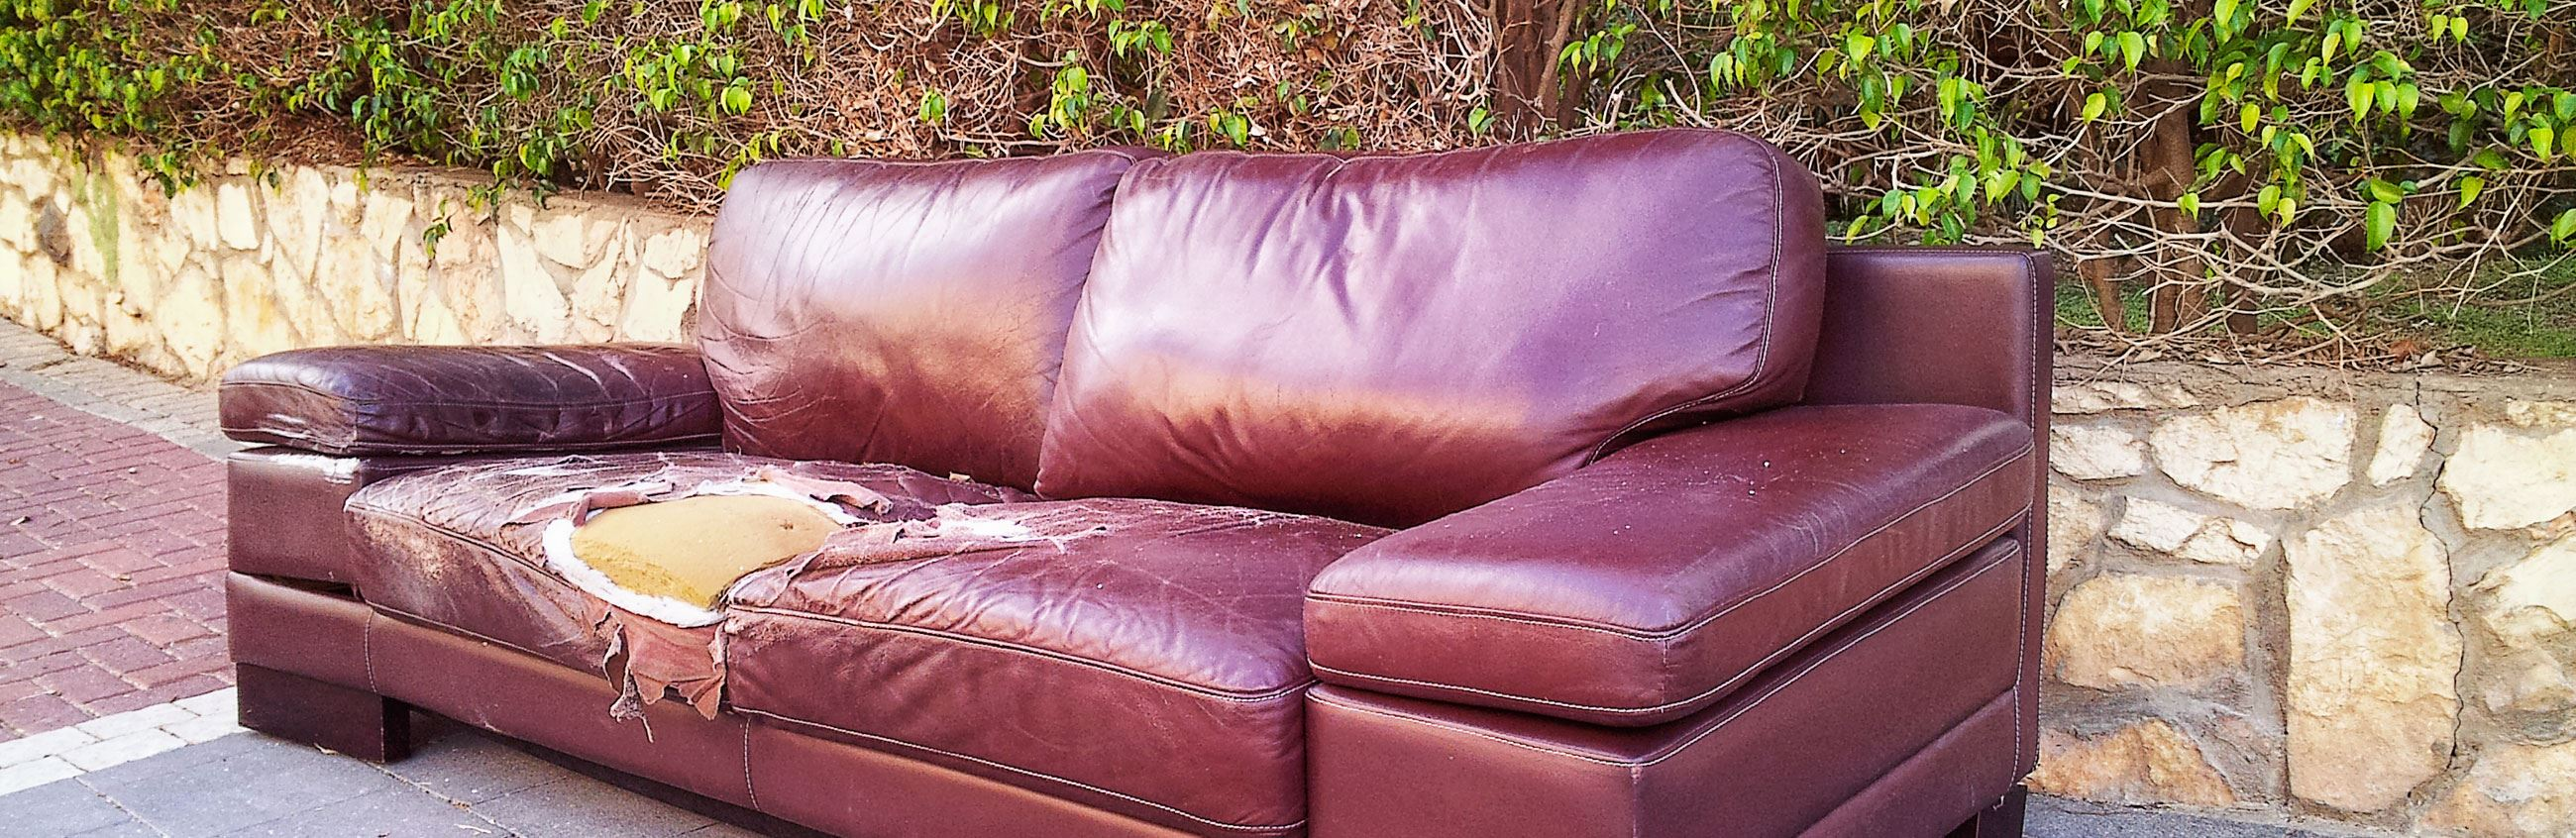 Damaged couch waiting for trash pickup